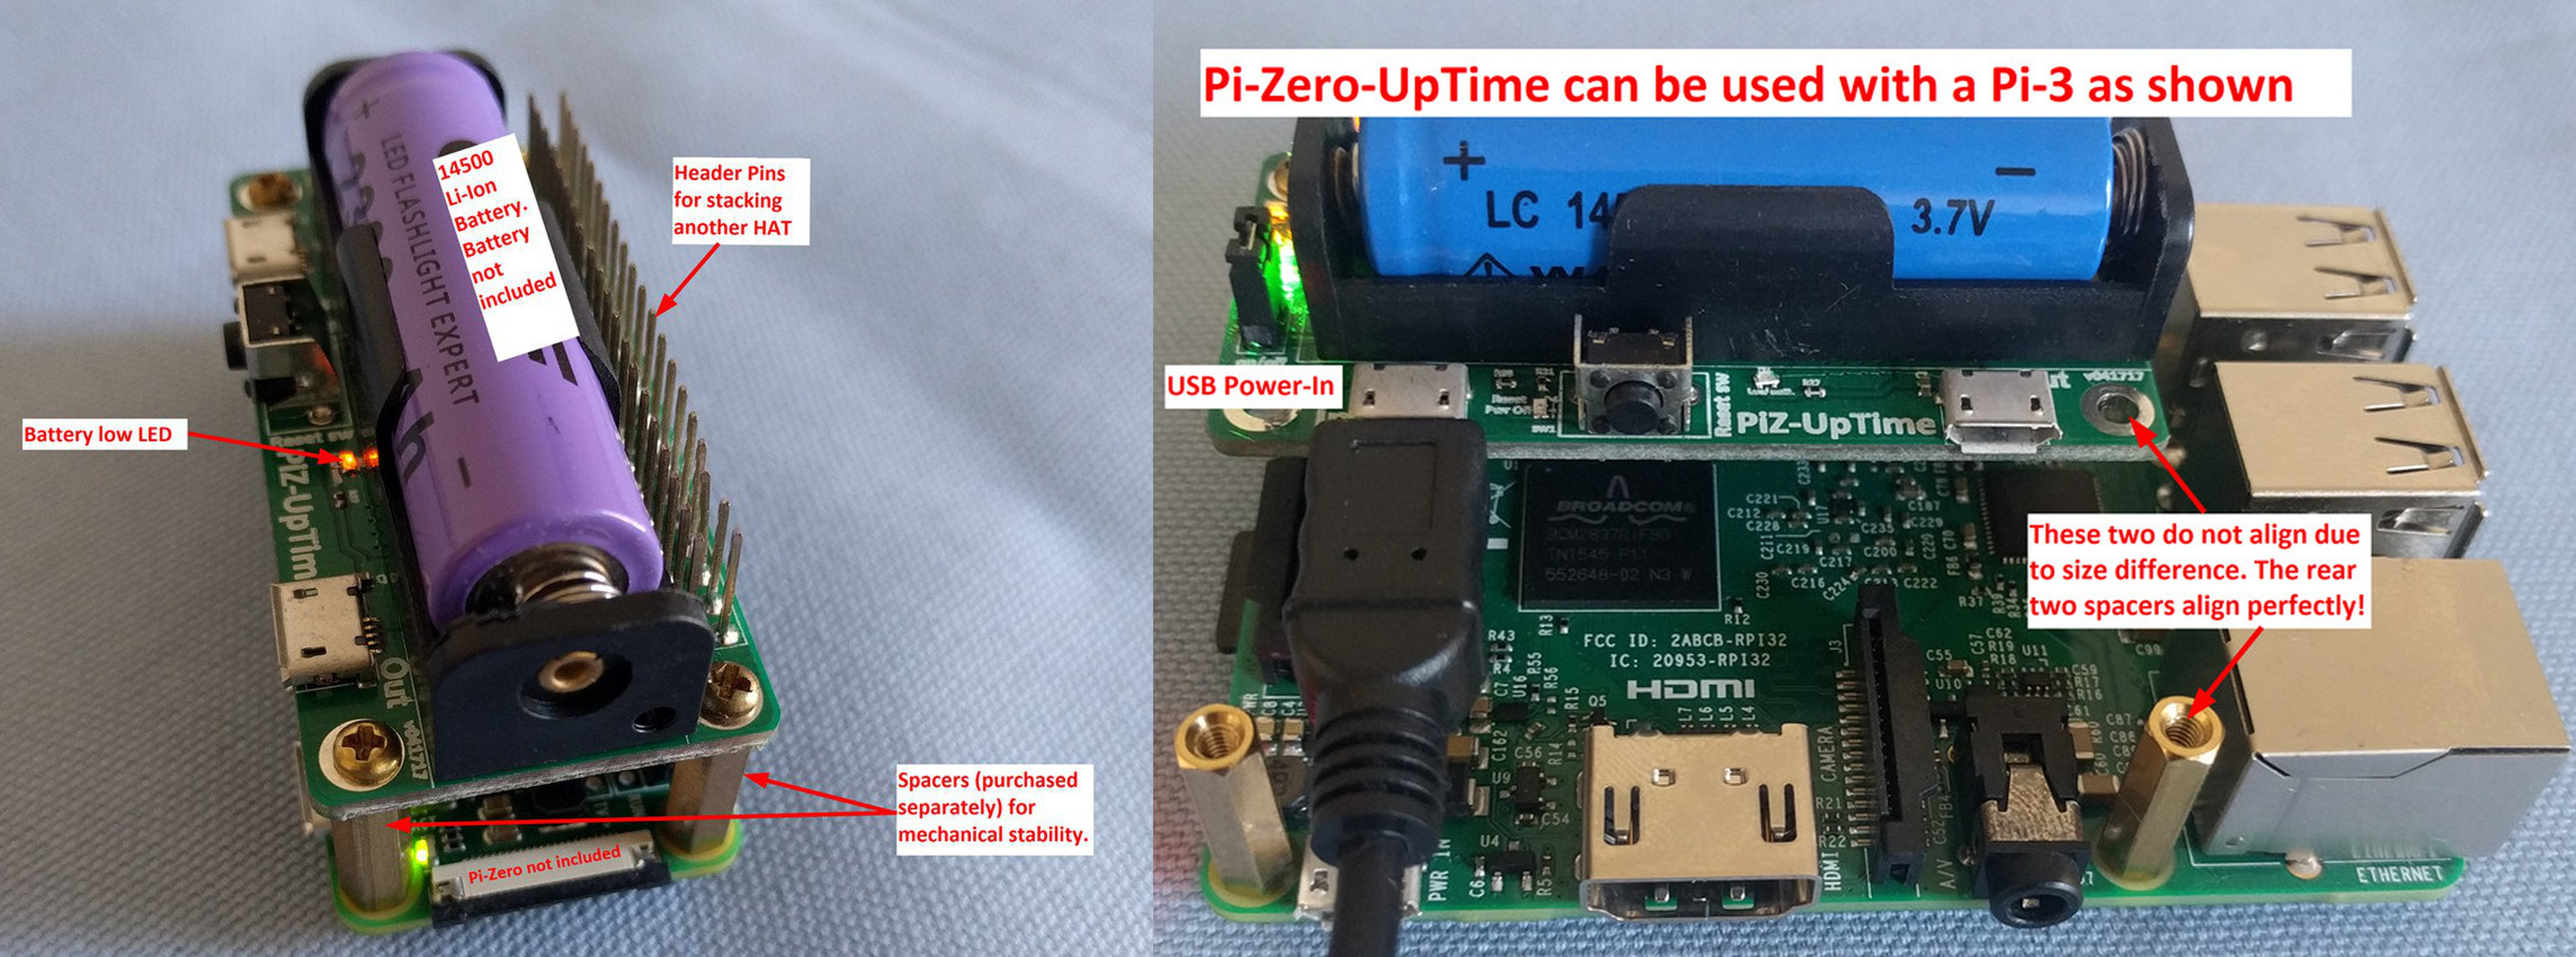 Pi-Zero-UpTime is an UPS for Raspberry Pi Boards and Clones